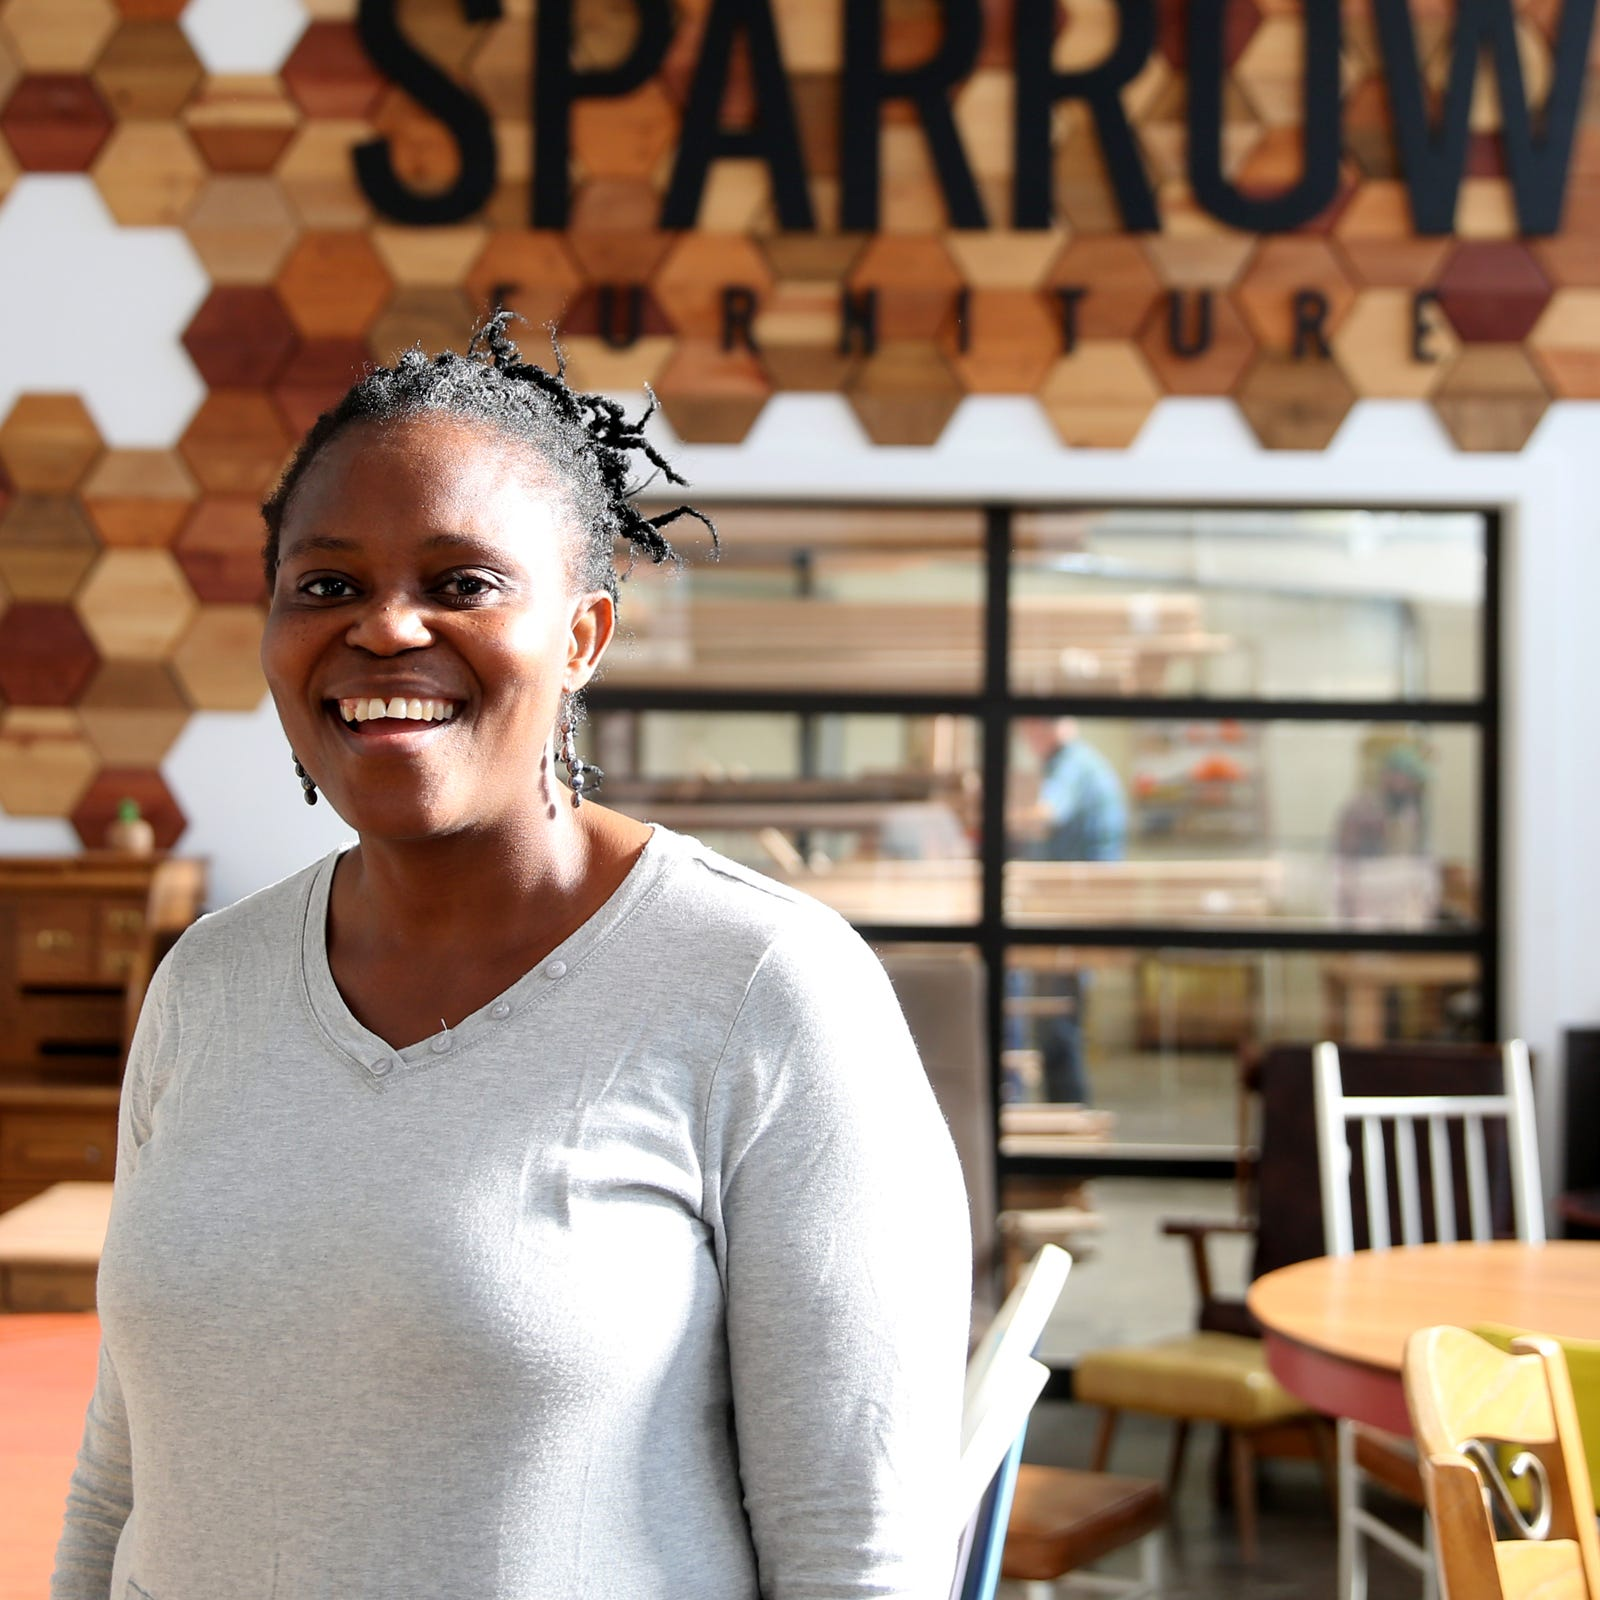 Salem's Sparrow Furniture gives refugees jobs, help adjusting to American life